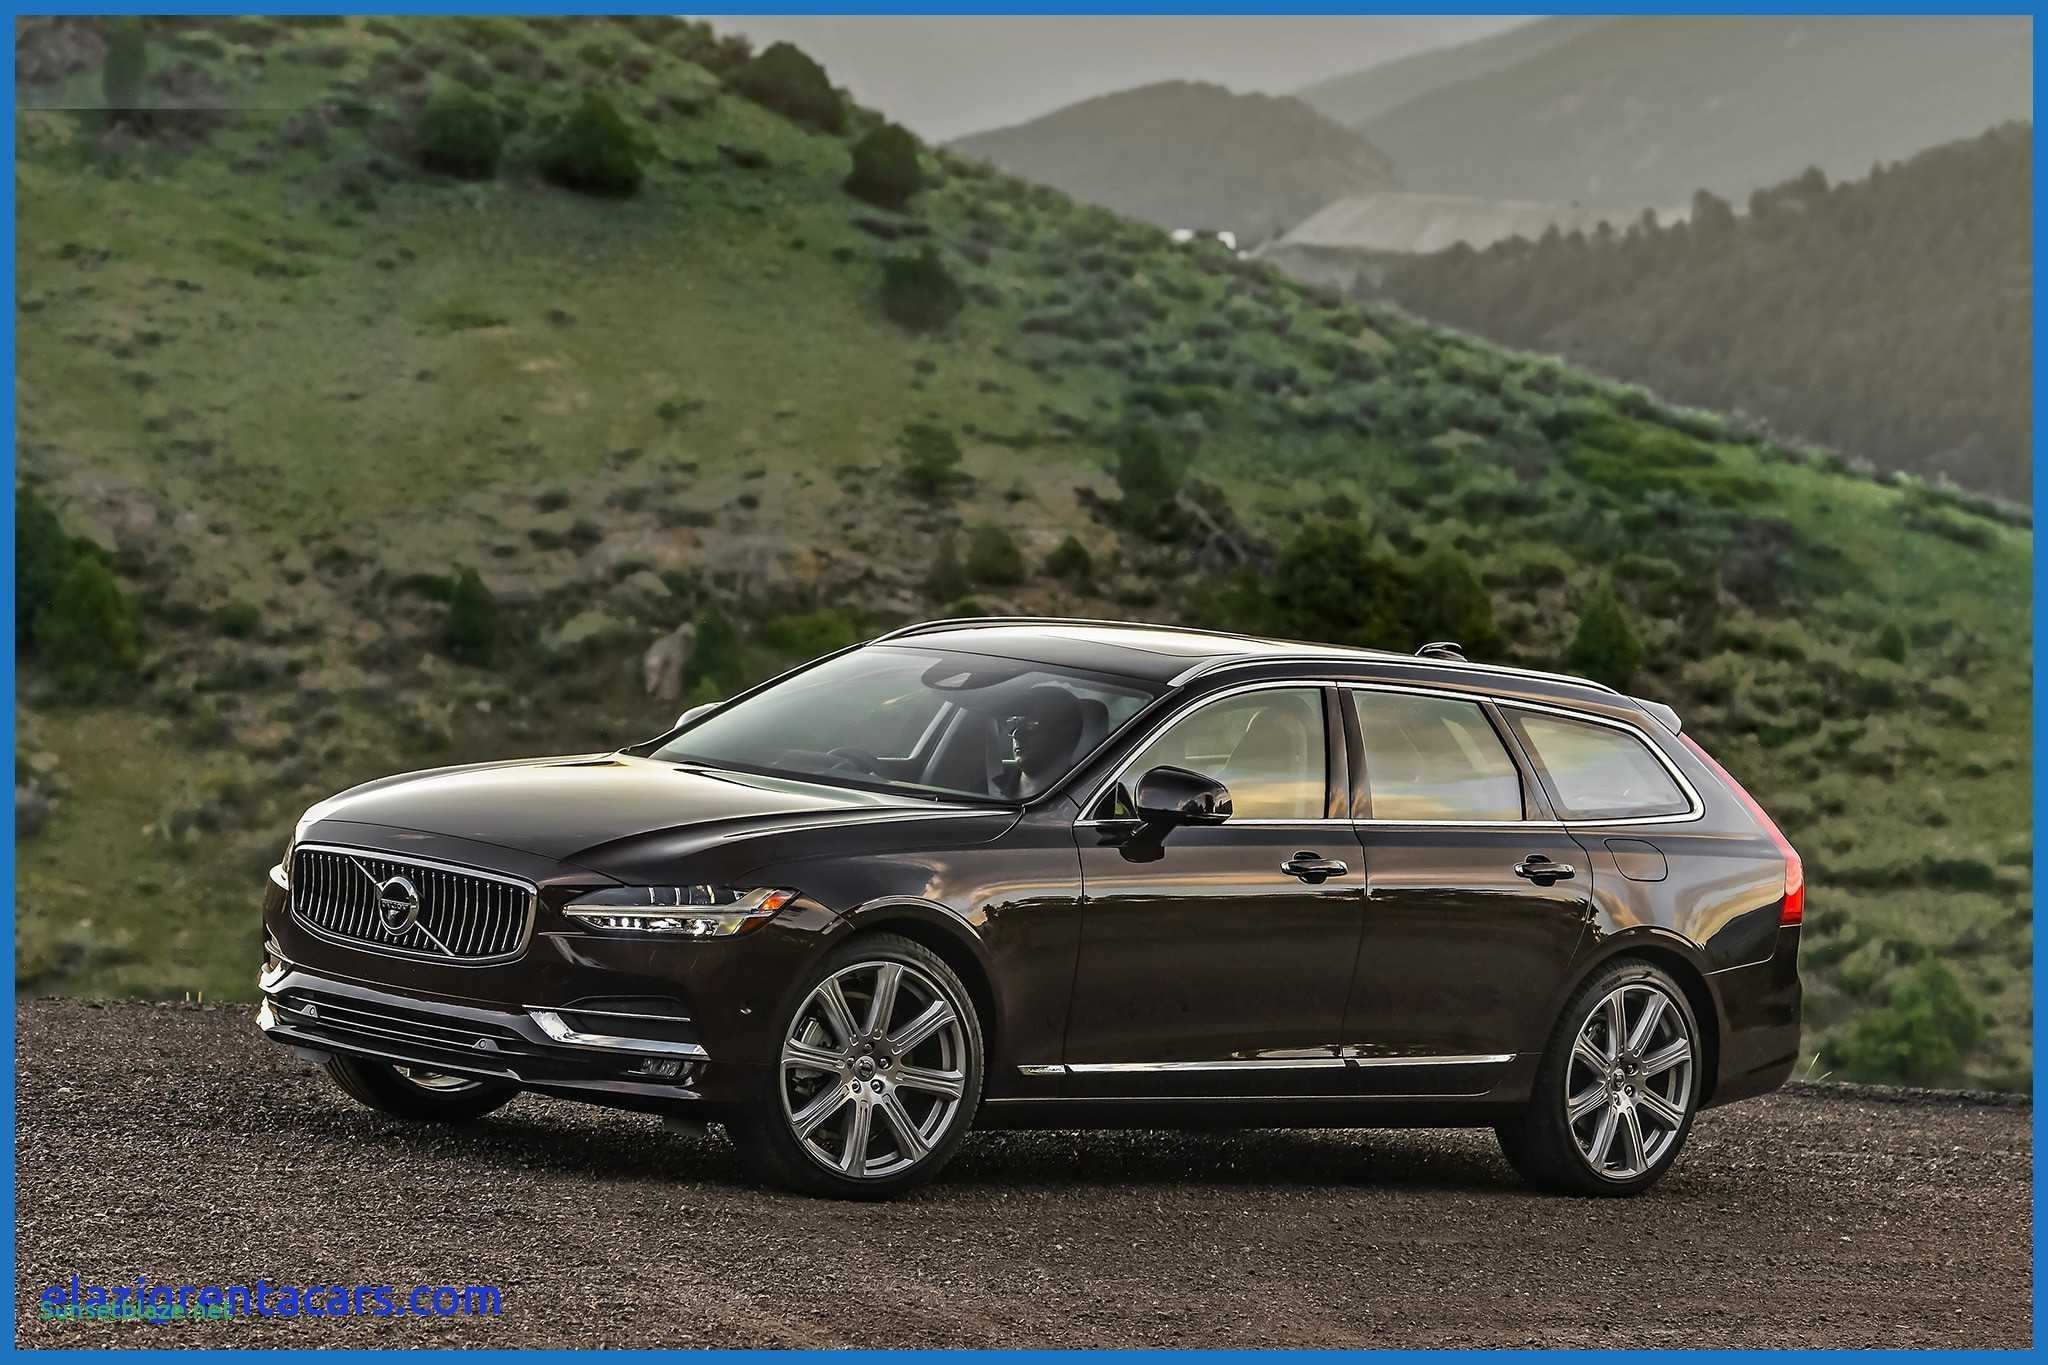 80 A 2020 Volvo Xc70 New Generation Wagon Pictures